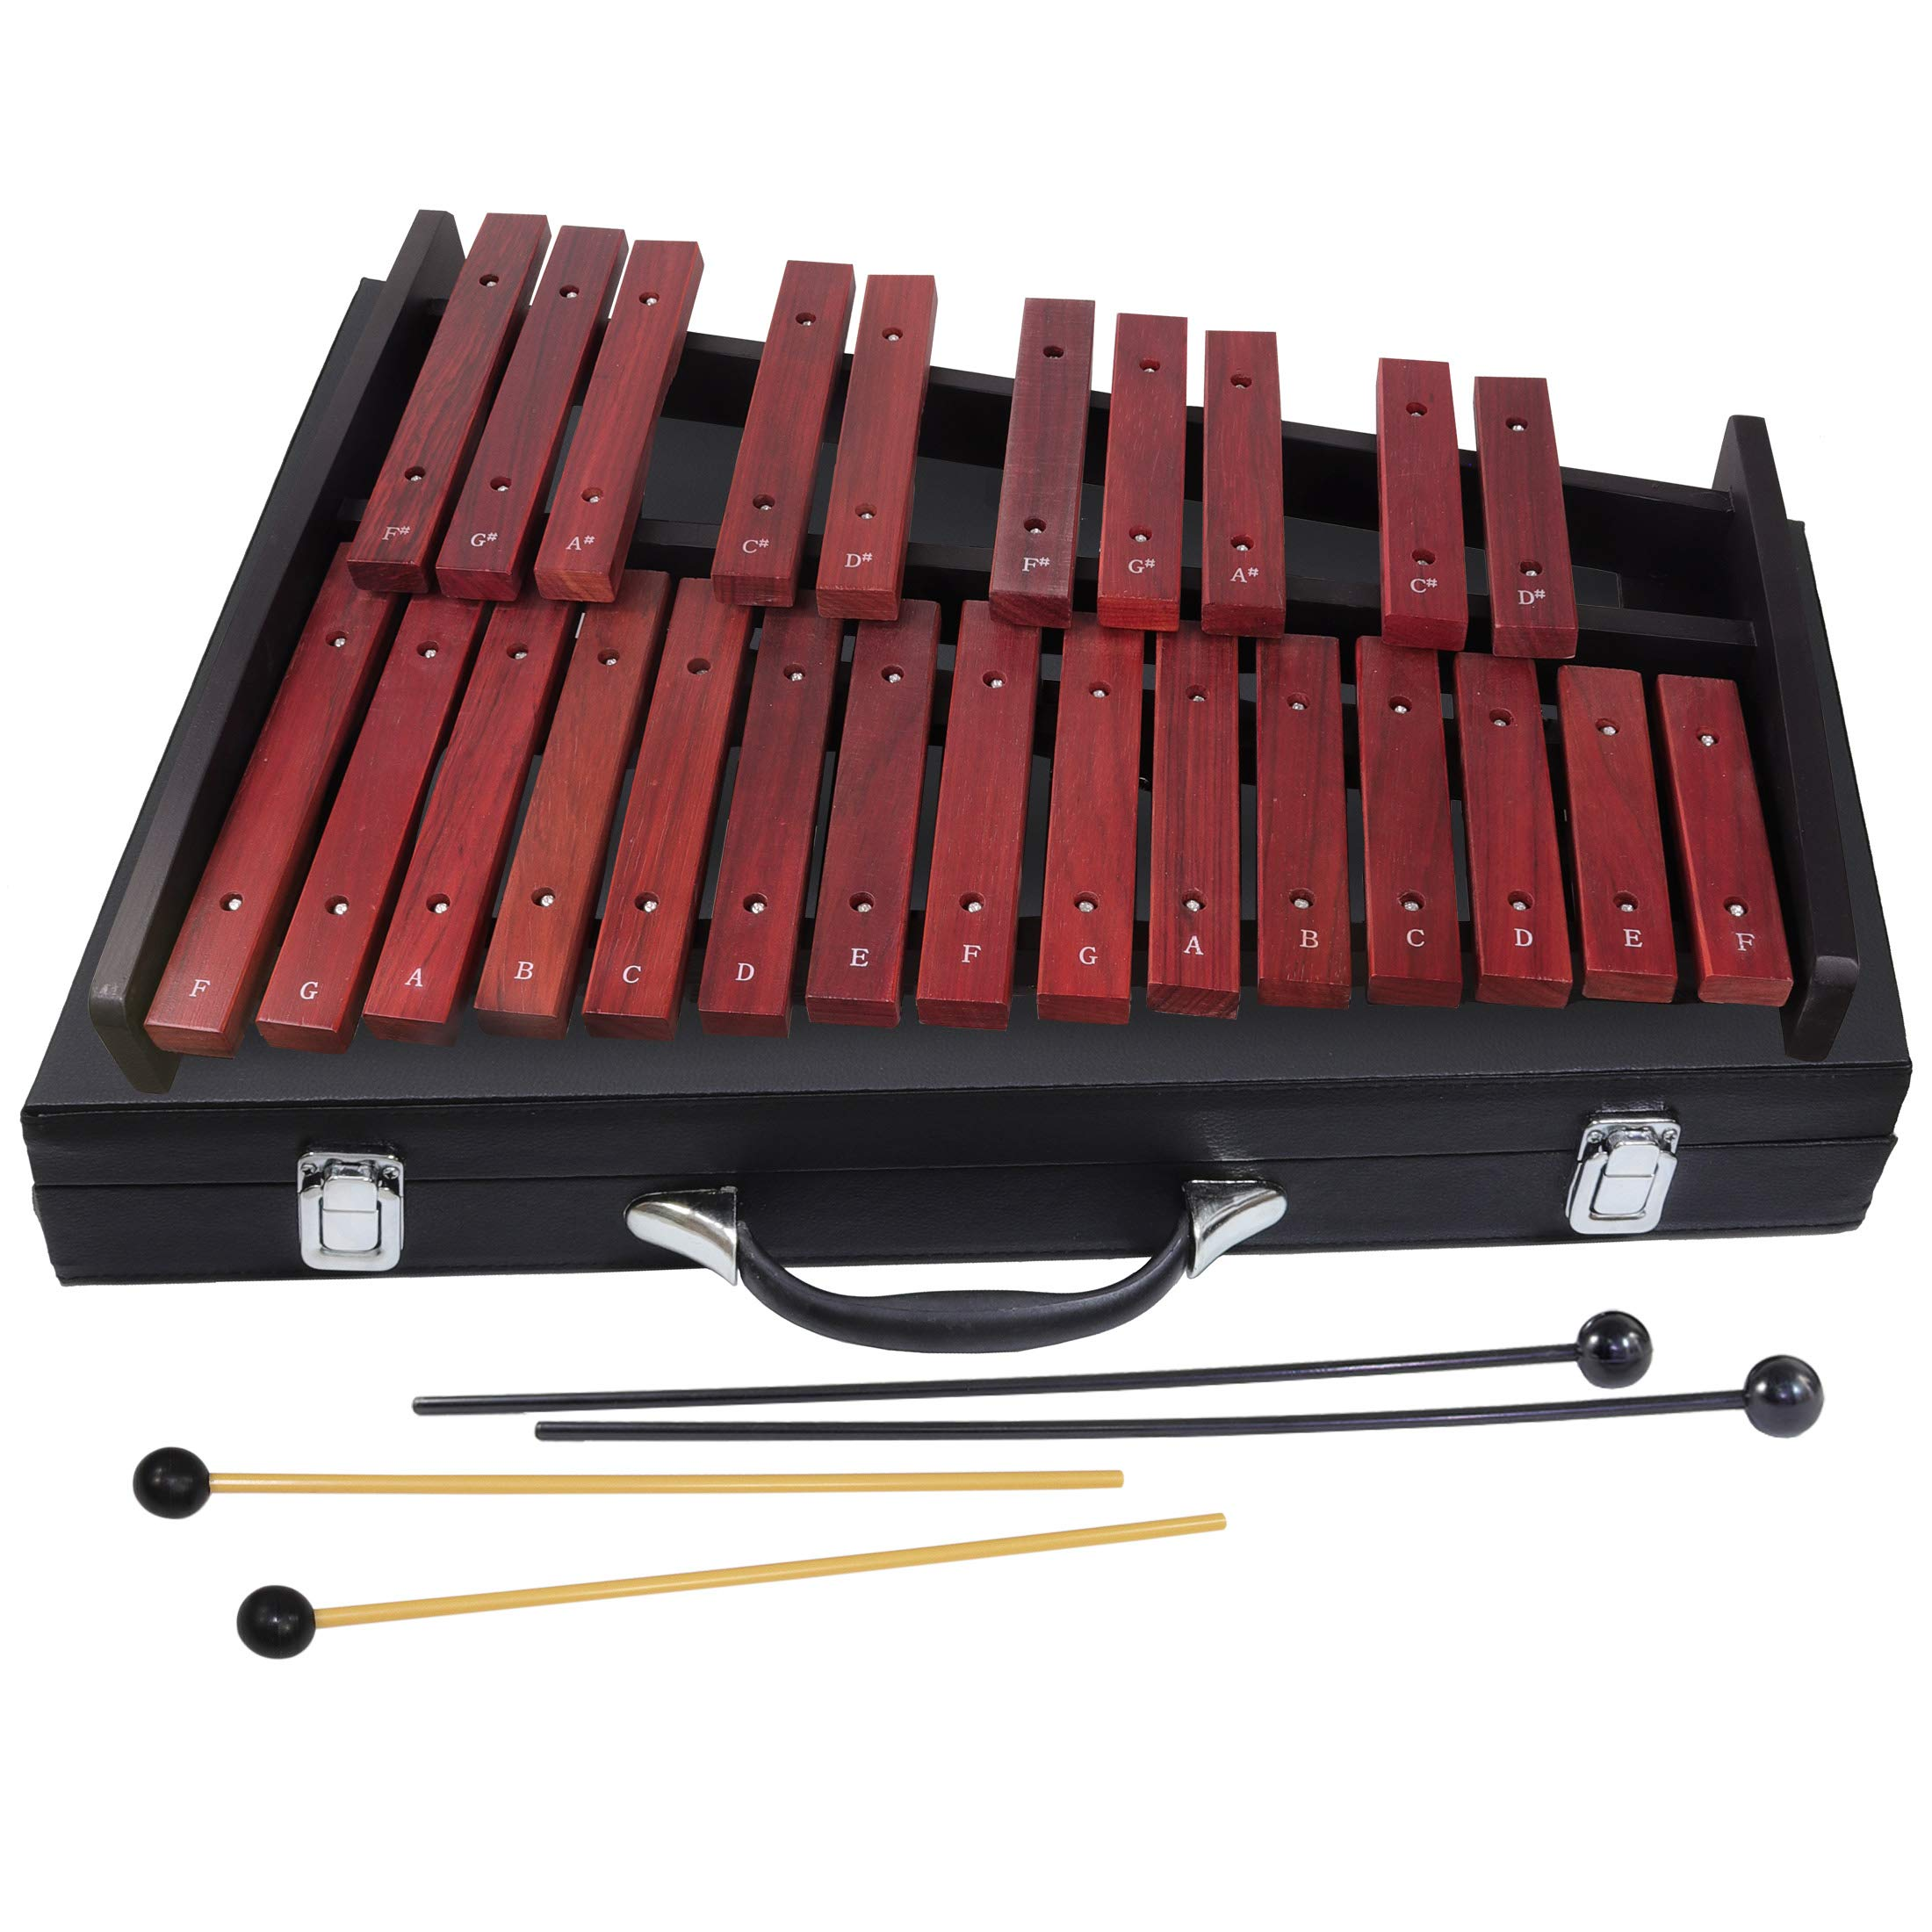 Wooden Xylophone for Adults - 25-note Xylophone with professional case - 4 mallets - Notes for Beginners